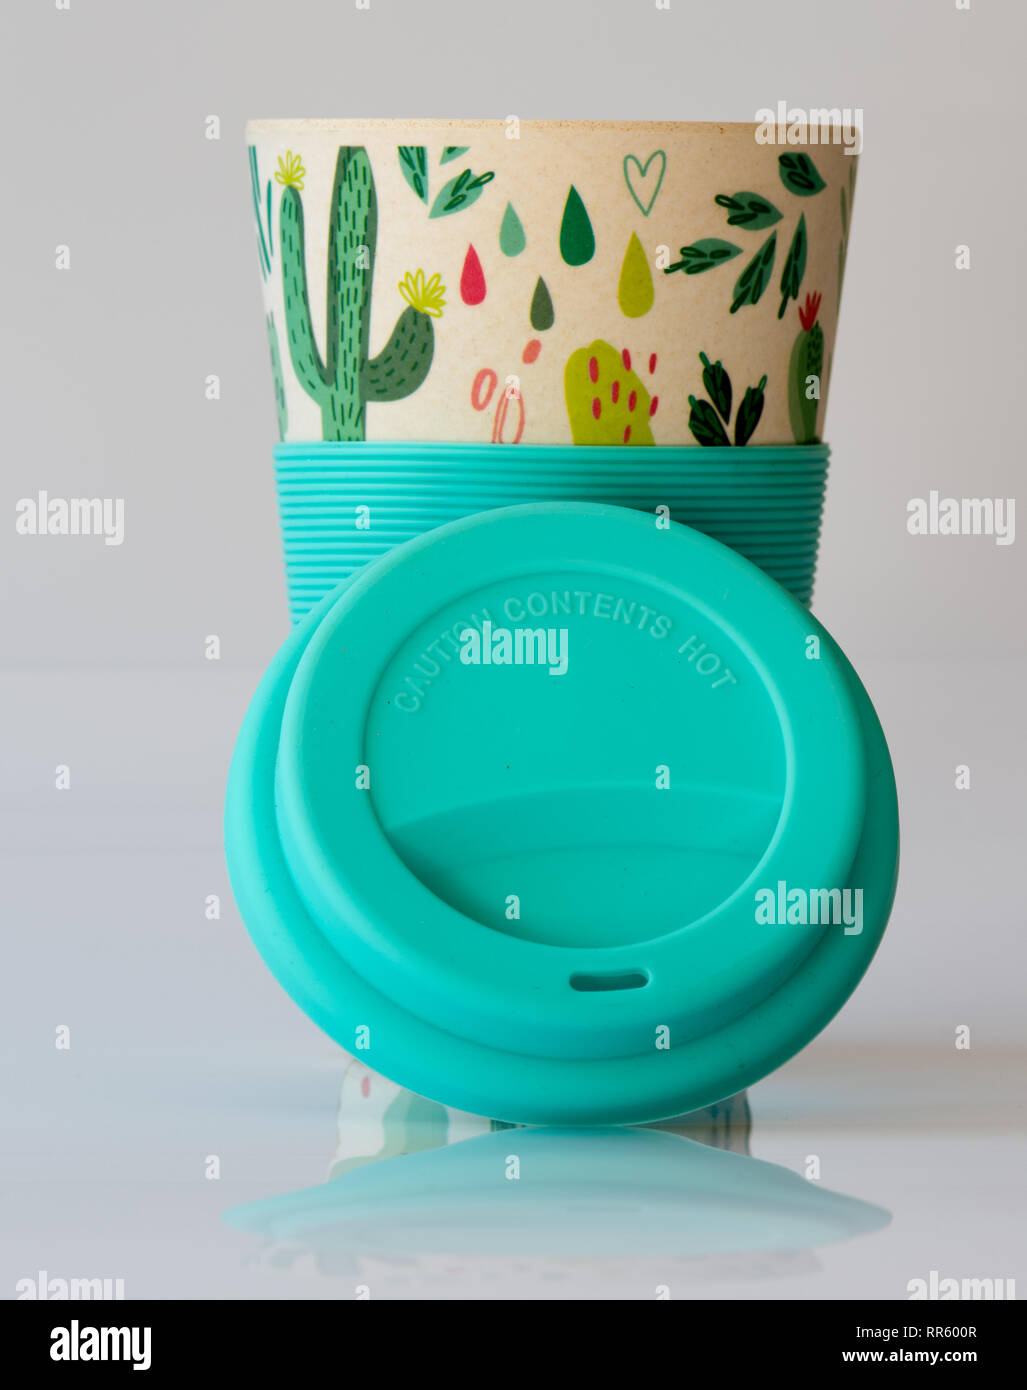 With Friendly Non Biodegradable Eco Plastic Travel Teacofee Mug EDH92IW